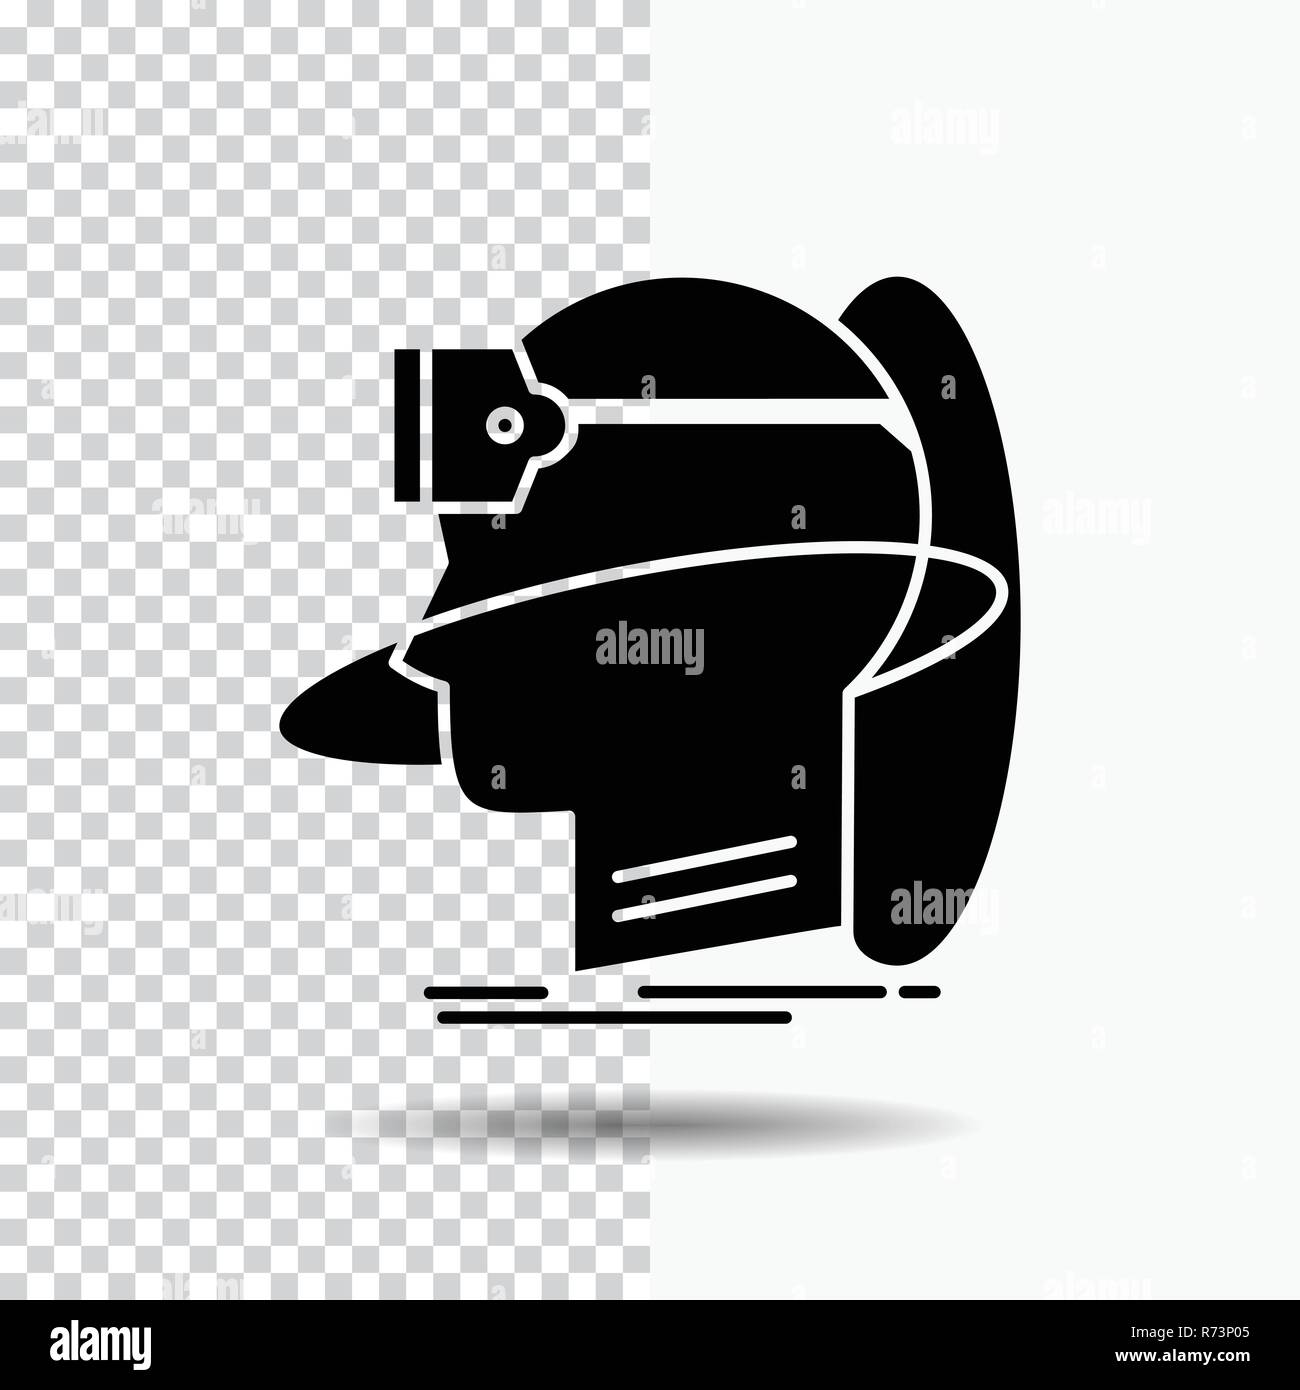 Human Man Reality User Virtual Vr Glyph Icon On Transparent Background Black Icon Stock Vector Image Art Alamy The only solution so far has been to use only. https www alamy com human man reality user virtual vr glyph icon on transparent background black icon image228120485 html